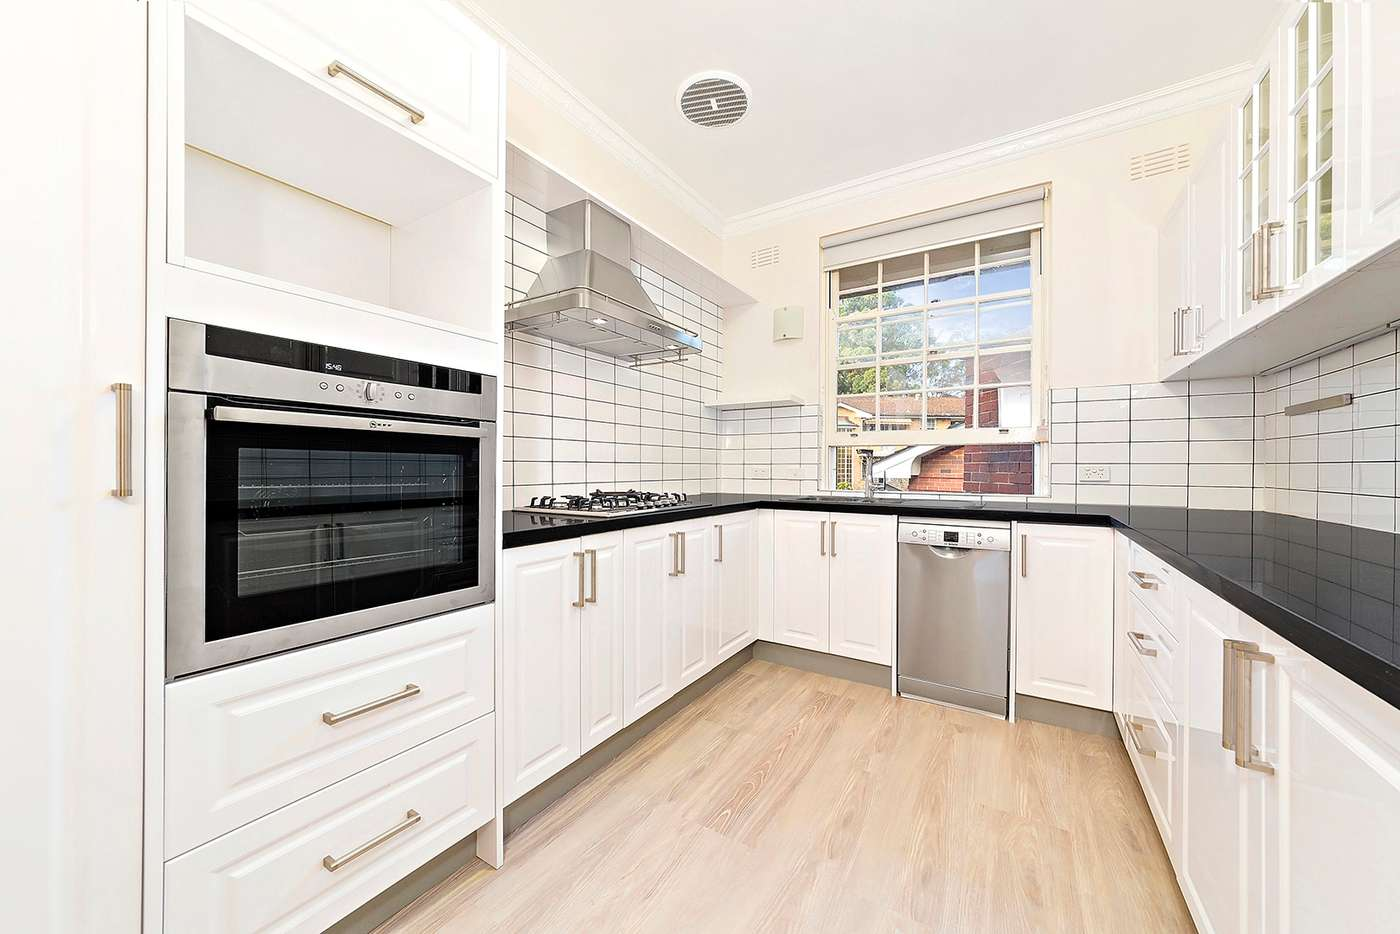 Main view of Homely apartment listing, 14/8 Larkin Street, Roseville NSW 2069